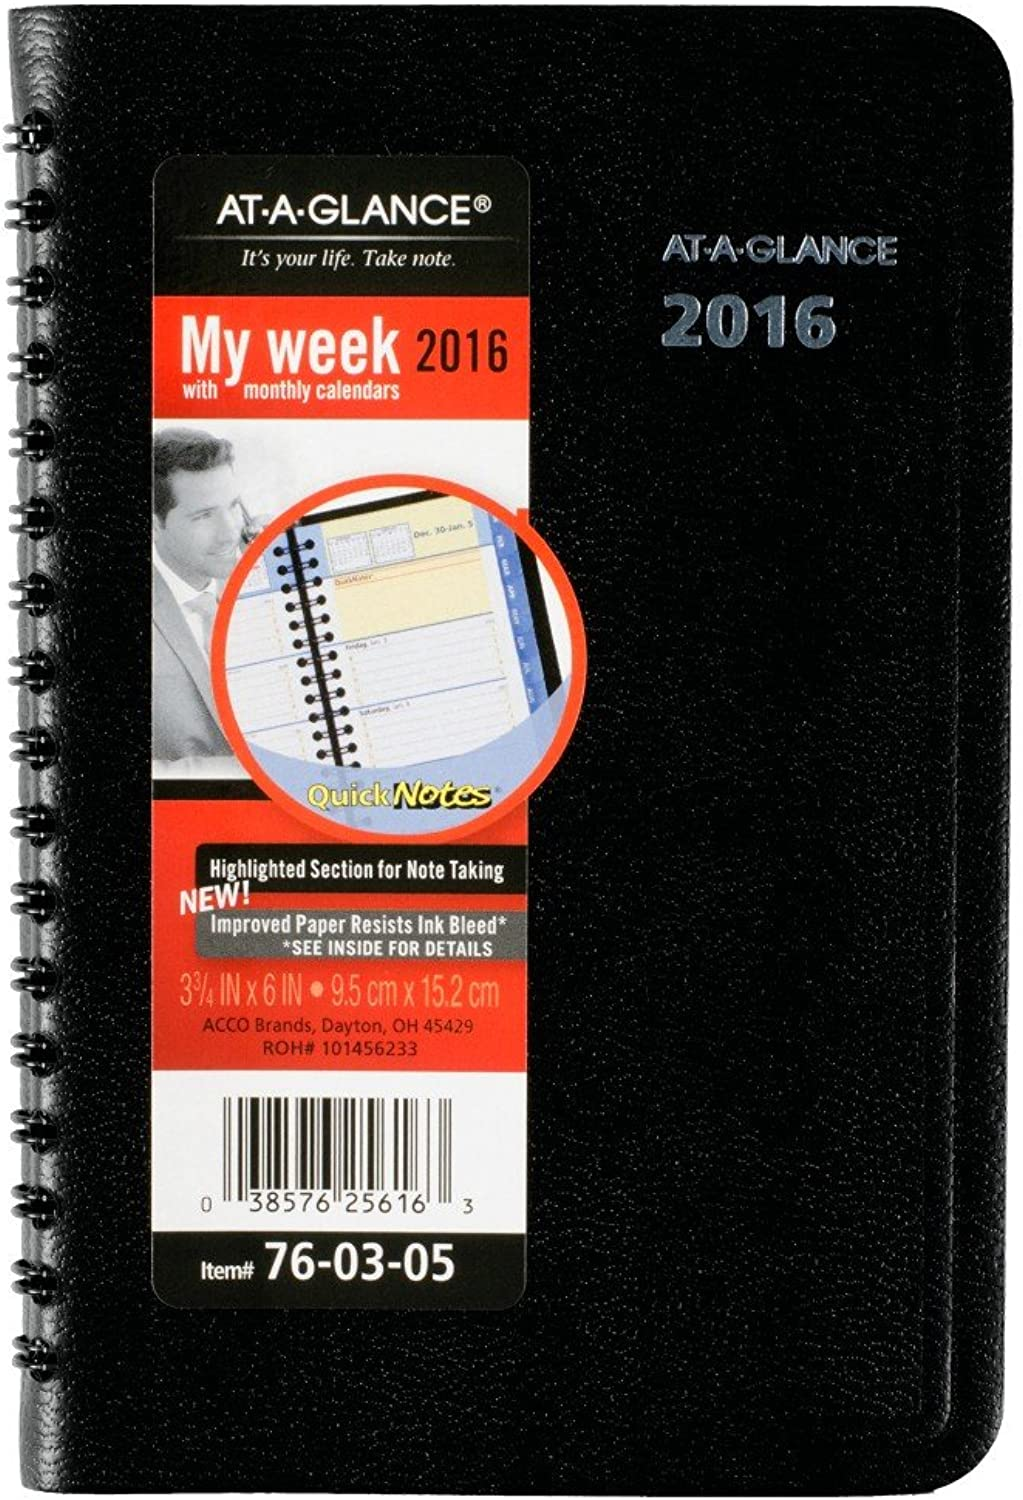 AT-A-GLANCE Weekly   Monthly Appointment Book   Planner 2016, Quick Notes, Pocket Größe, 12 Month, 3.75 x 6 Inch Page Größe (760305) by At-A-Glance B00WUUQEB2 | Deutschland Shops